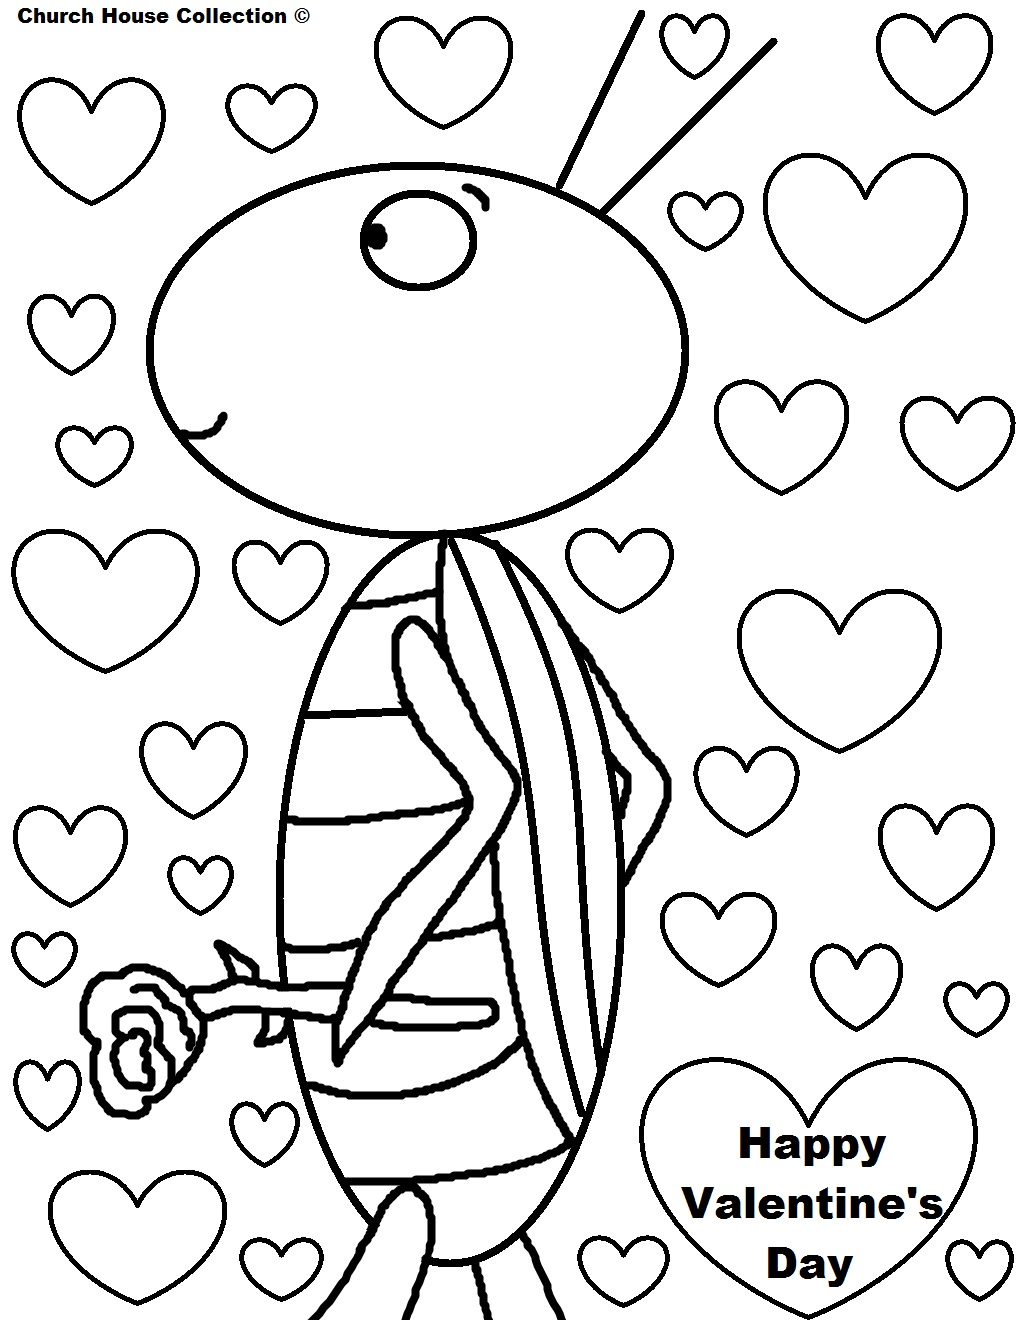 Church House Collection Blog Valentines Day Coloring Pages For School Teachers